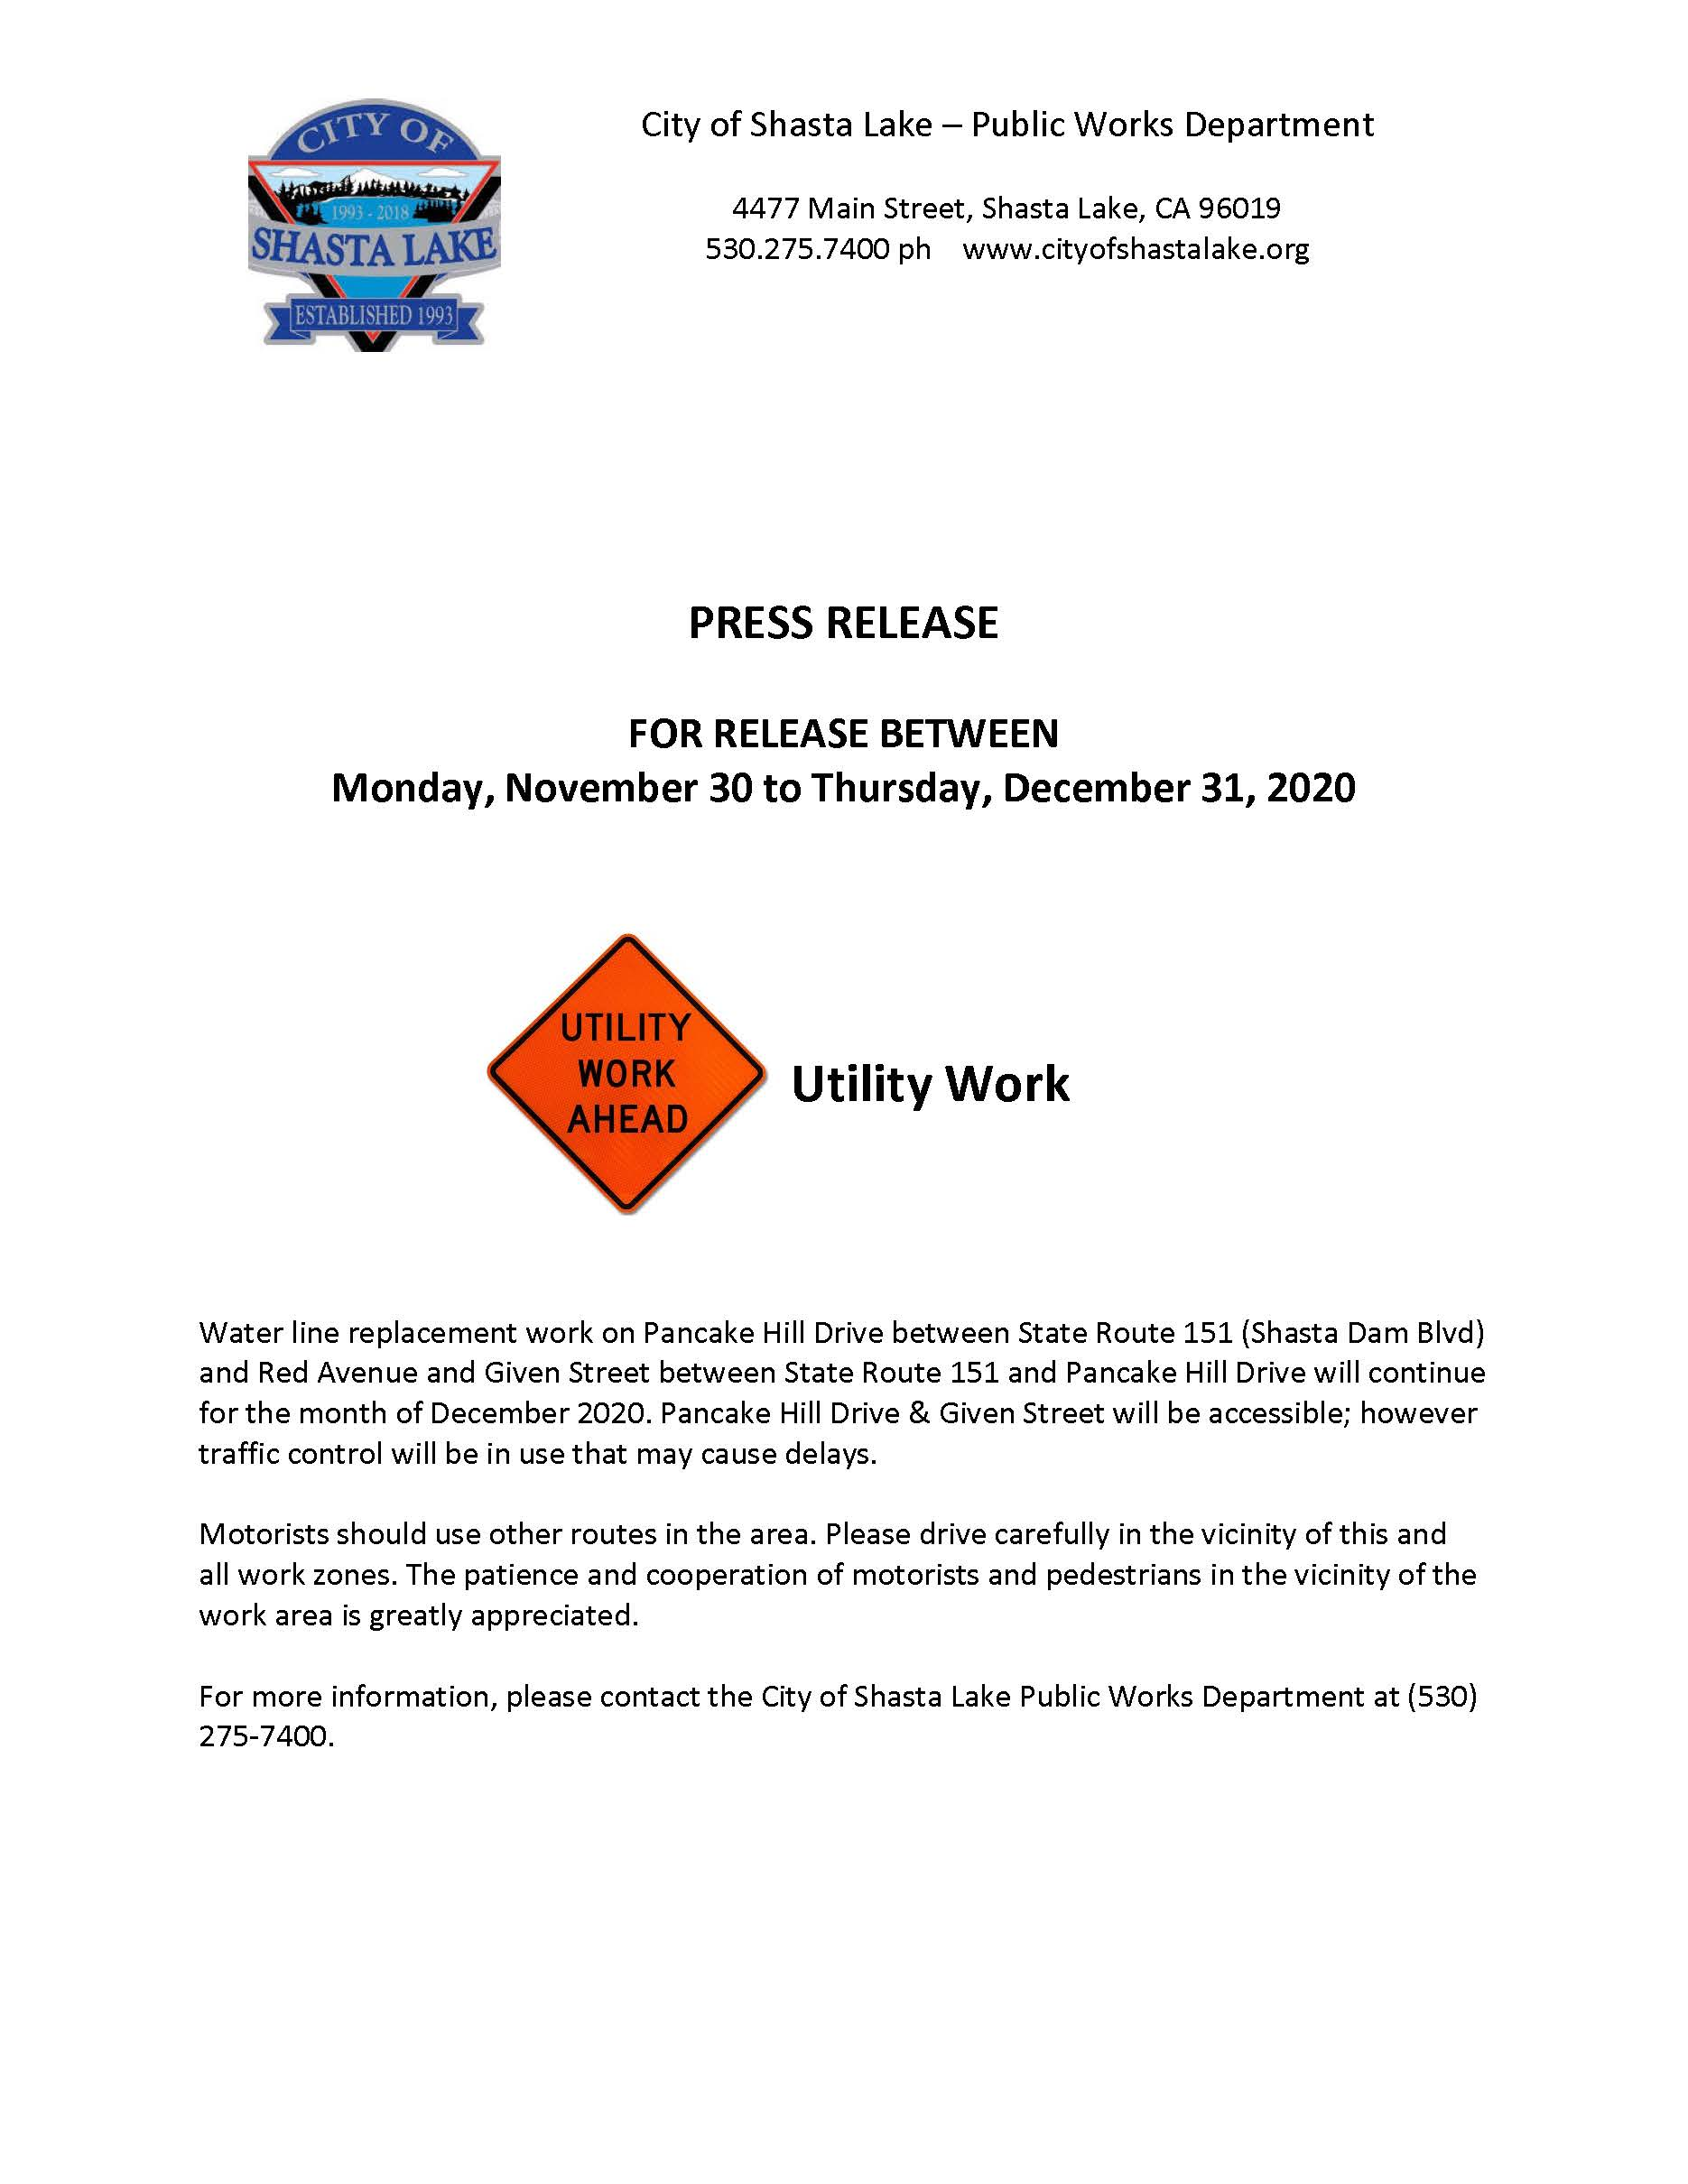 Press Release 1 - Work on Pancake Hill  Given St_